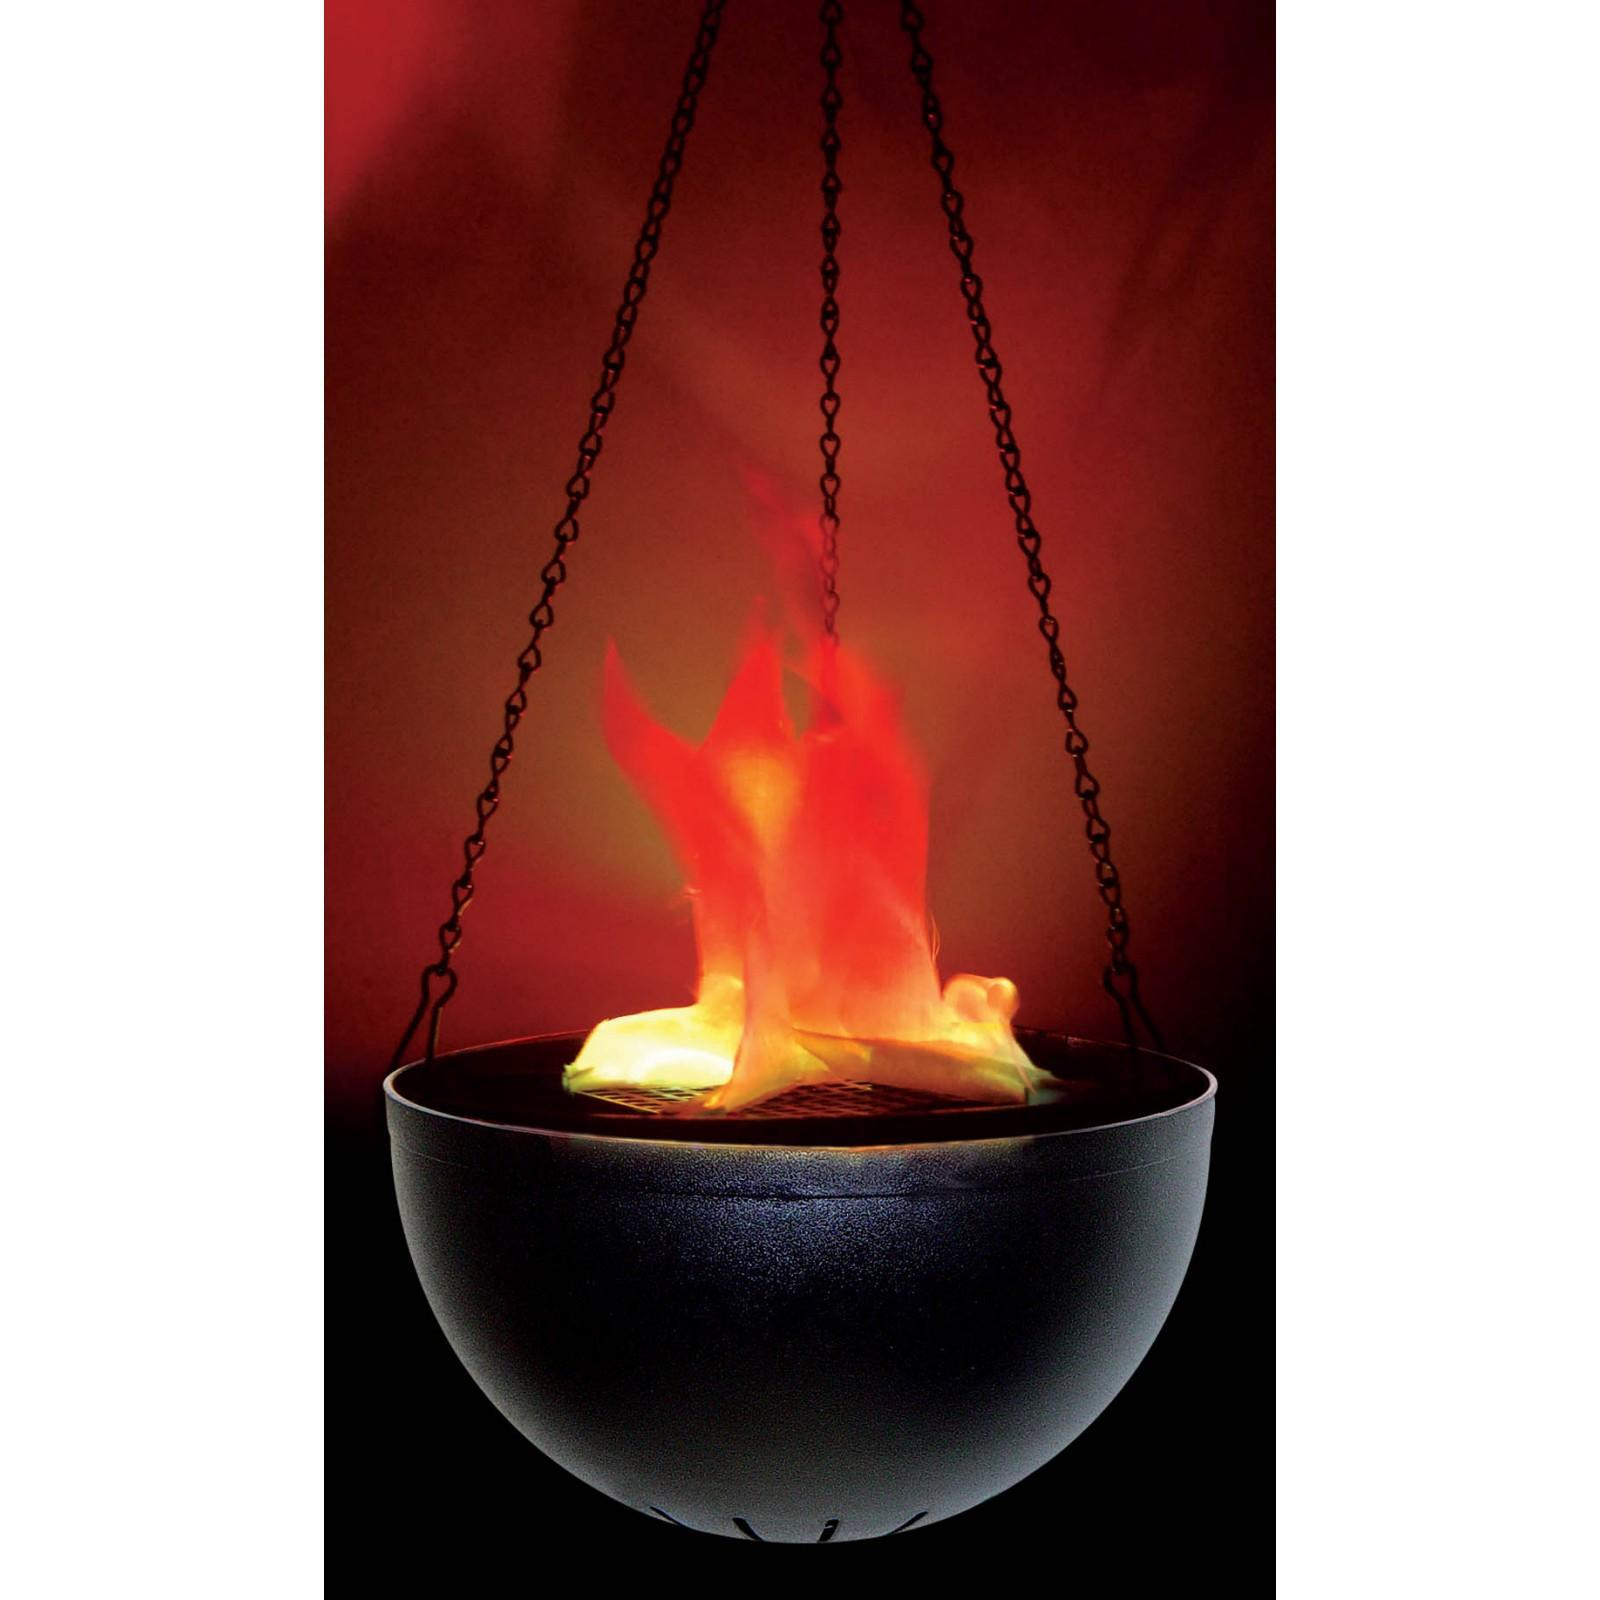 Flame light small hanging $25 each incl gst